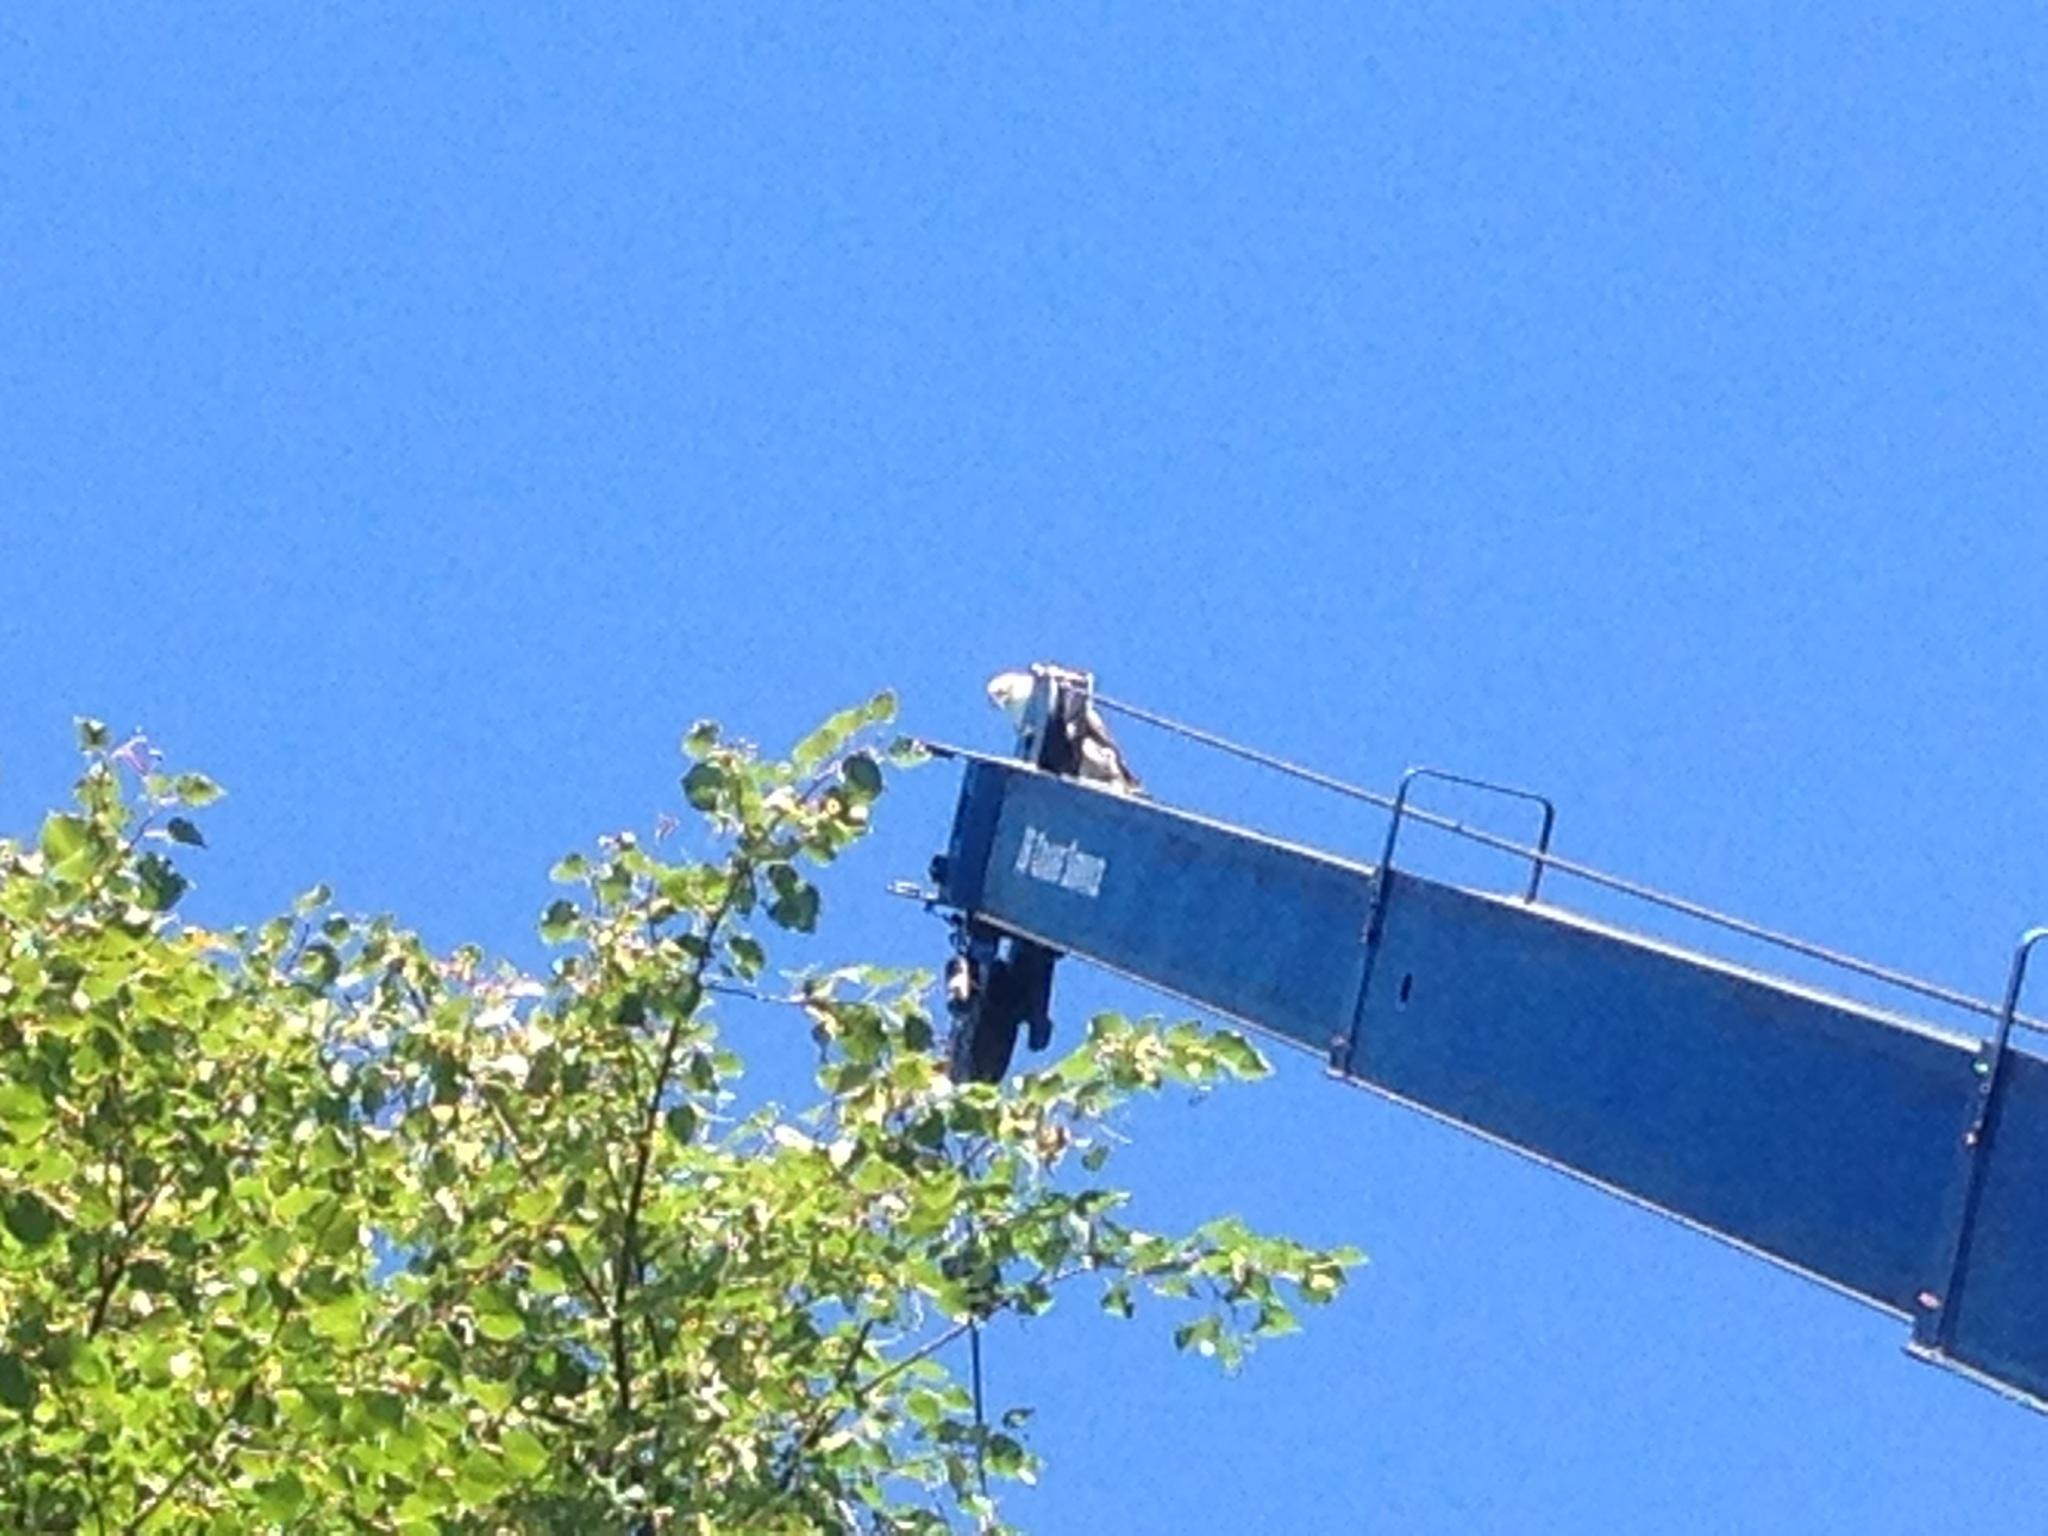 What appears to be a bald eagle resting on top of our crane boom.